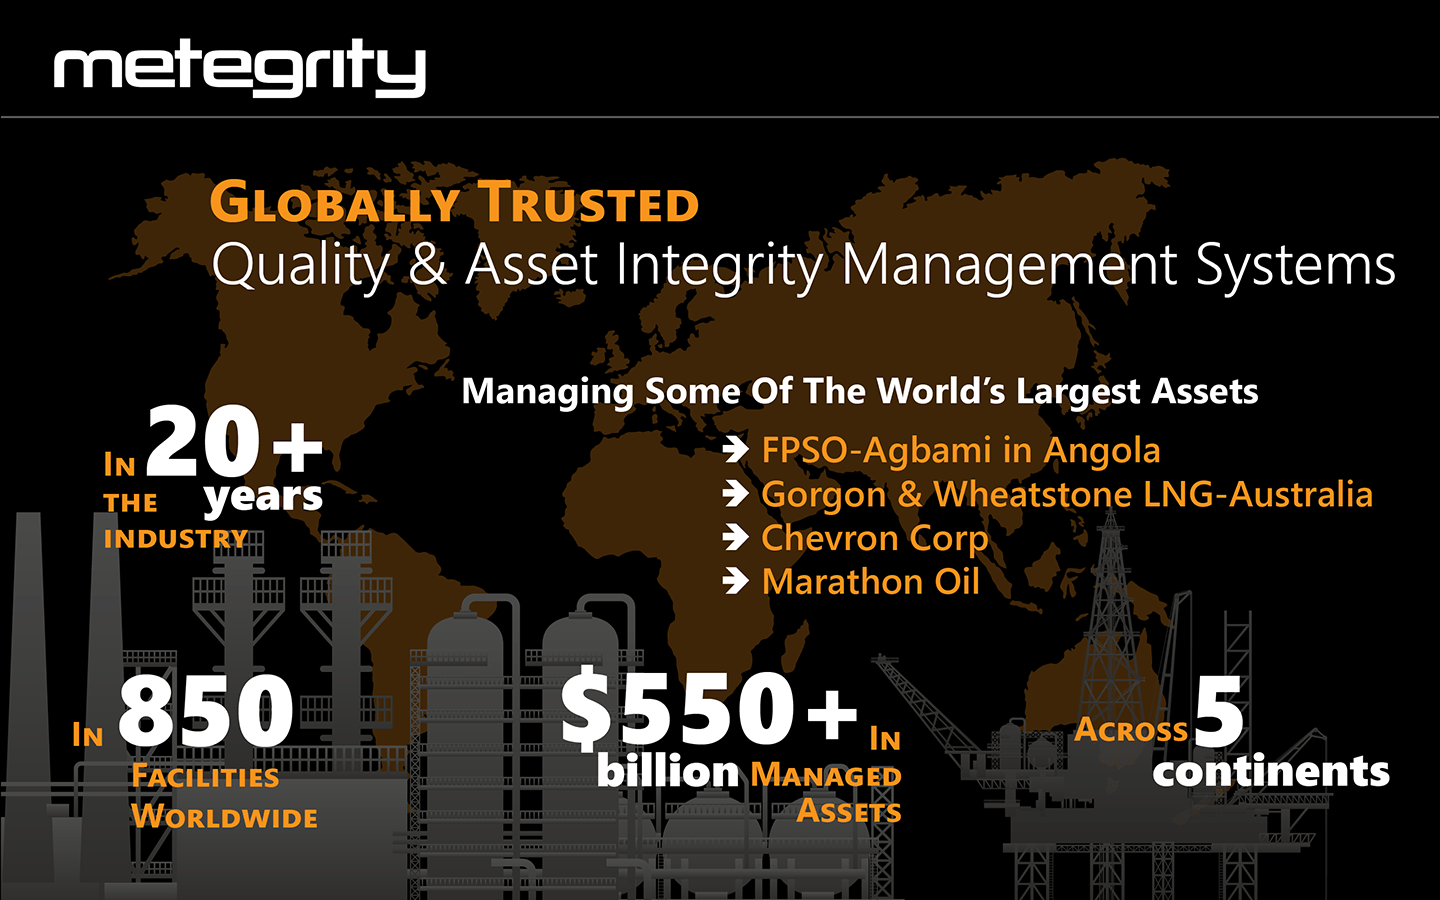 Metegrity at a glance: Globally trusted quality & asset management systems, managing some of the world's largest assets (FPSO-Agabami in Angola, Gorgon & Wheatstone LNG Australia, Chevron Corp, Marathon Oil), +20 years in the industry, in 850 facilities worldwide, +$550 billion in managed assets across 5 continents.